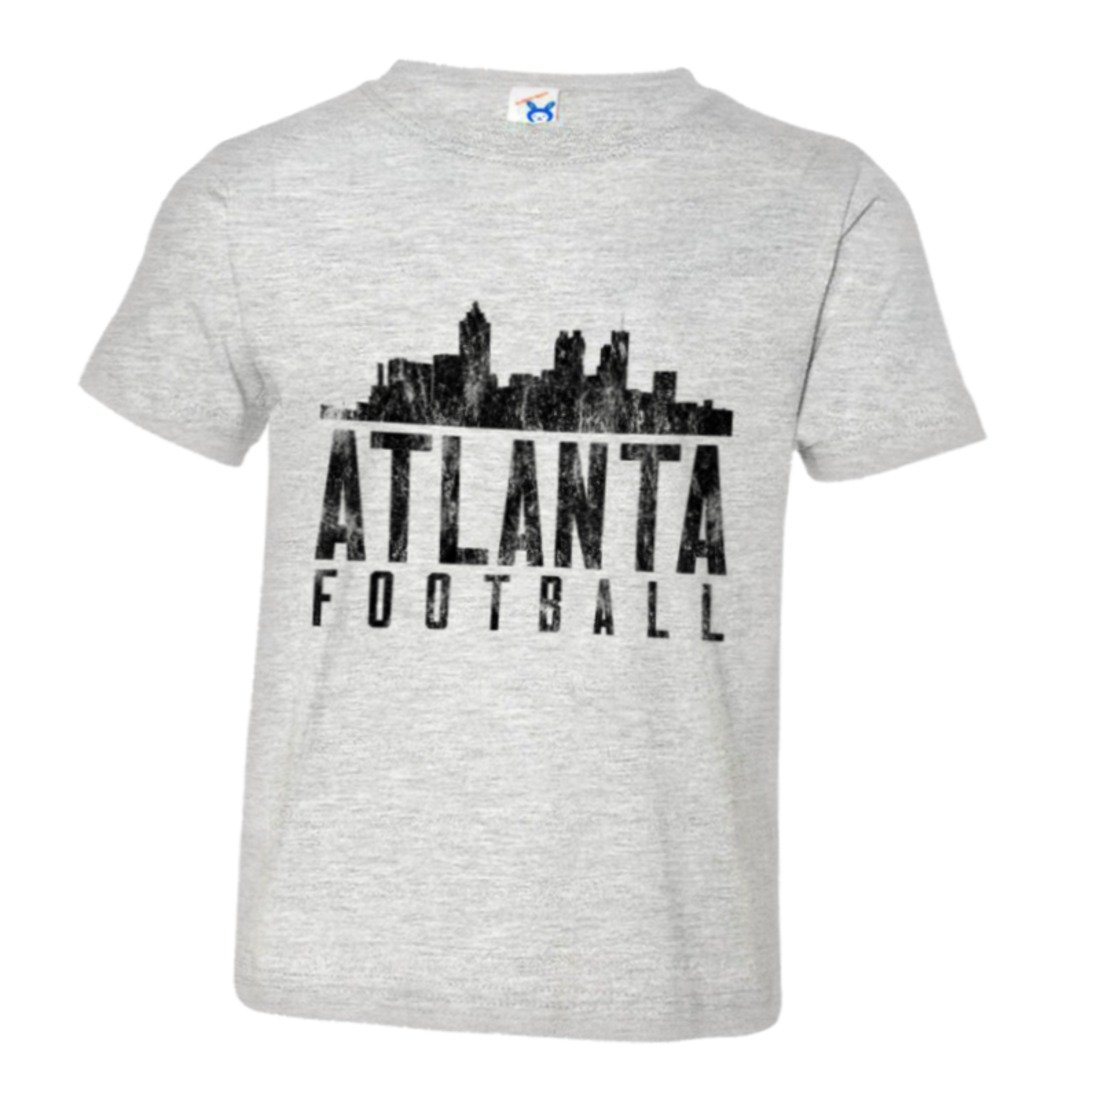 PleaseMeTees Toddler Atlanta Football Skyline Sports Distressed HQ Tee Shirt